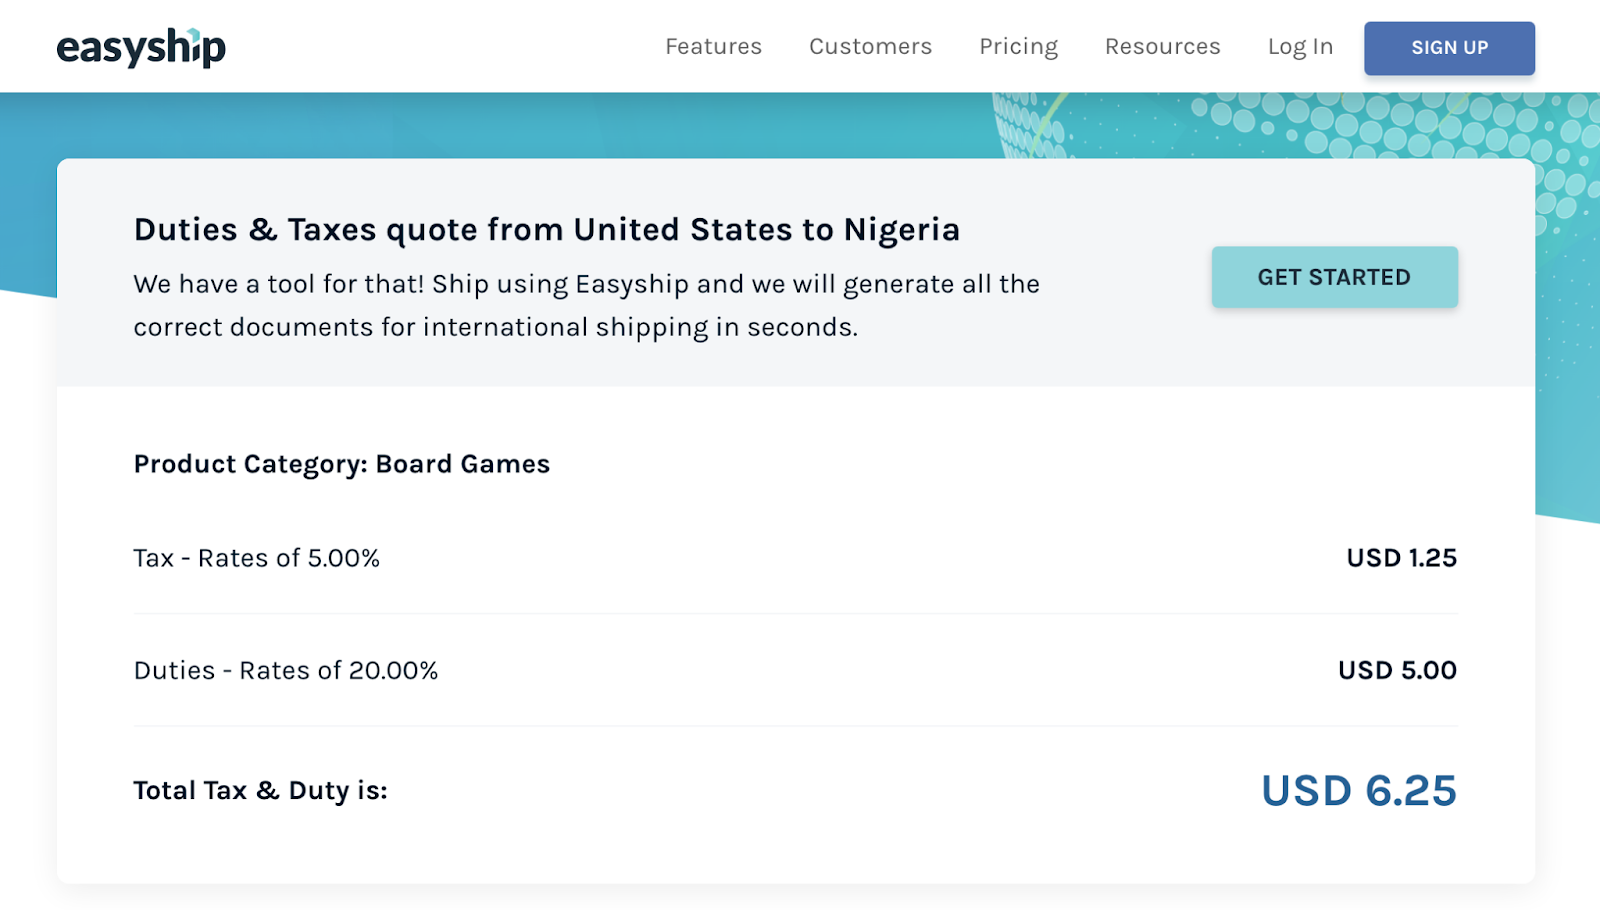 Duties and Taxes quote from US to Nigeria